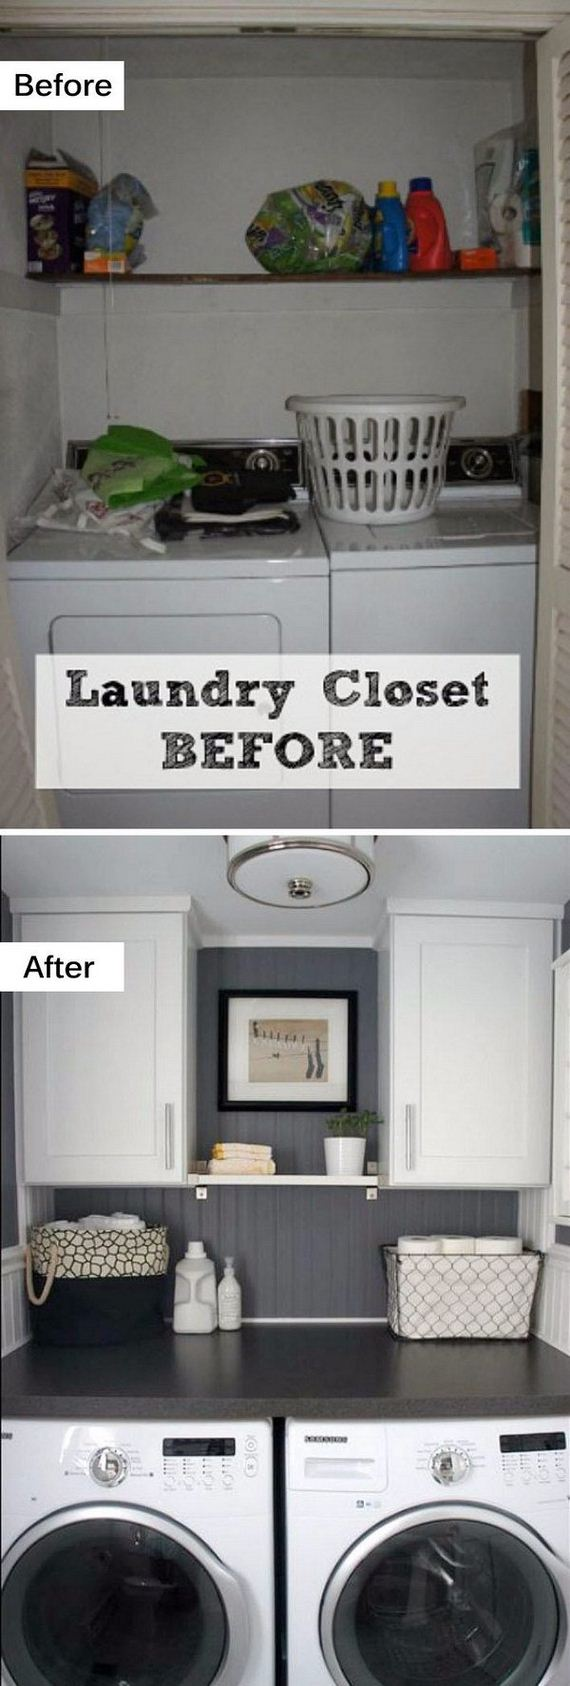 06-before-laundry-room